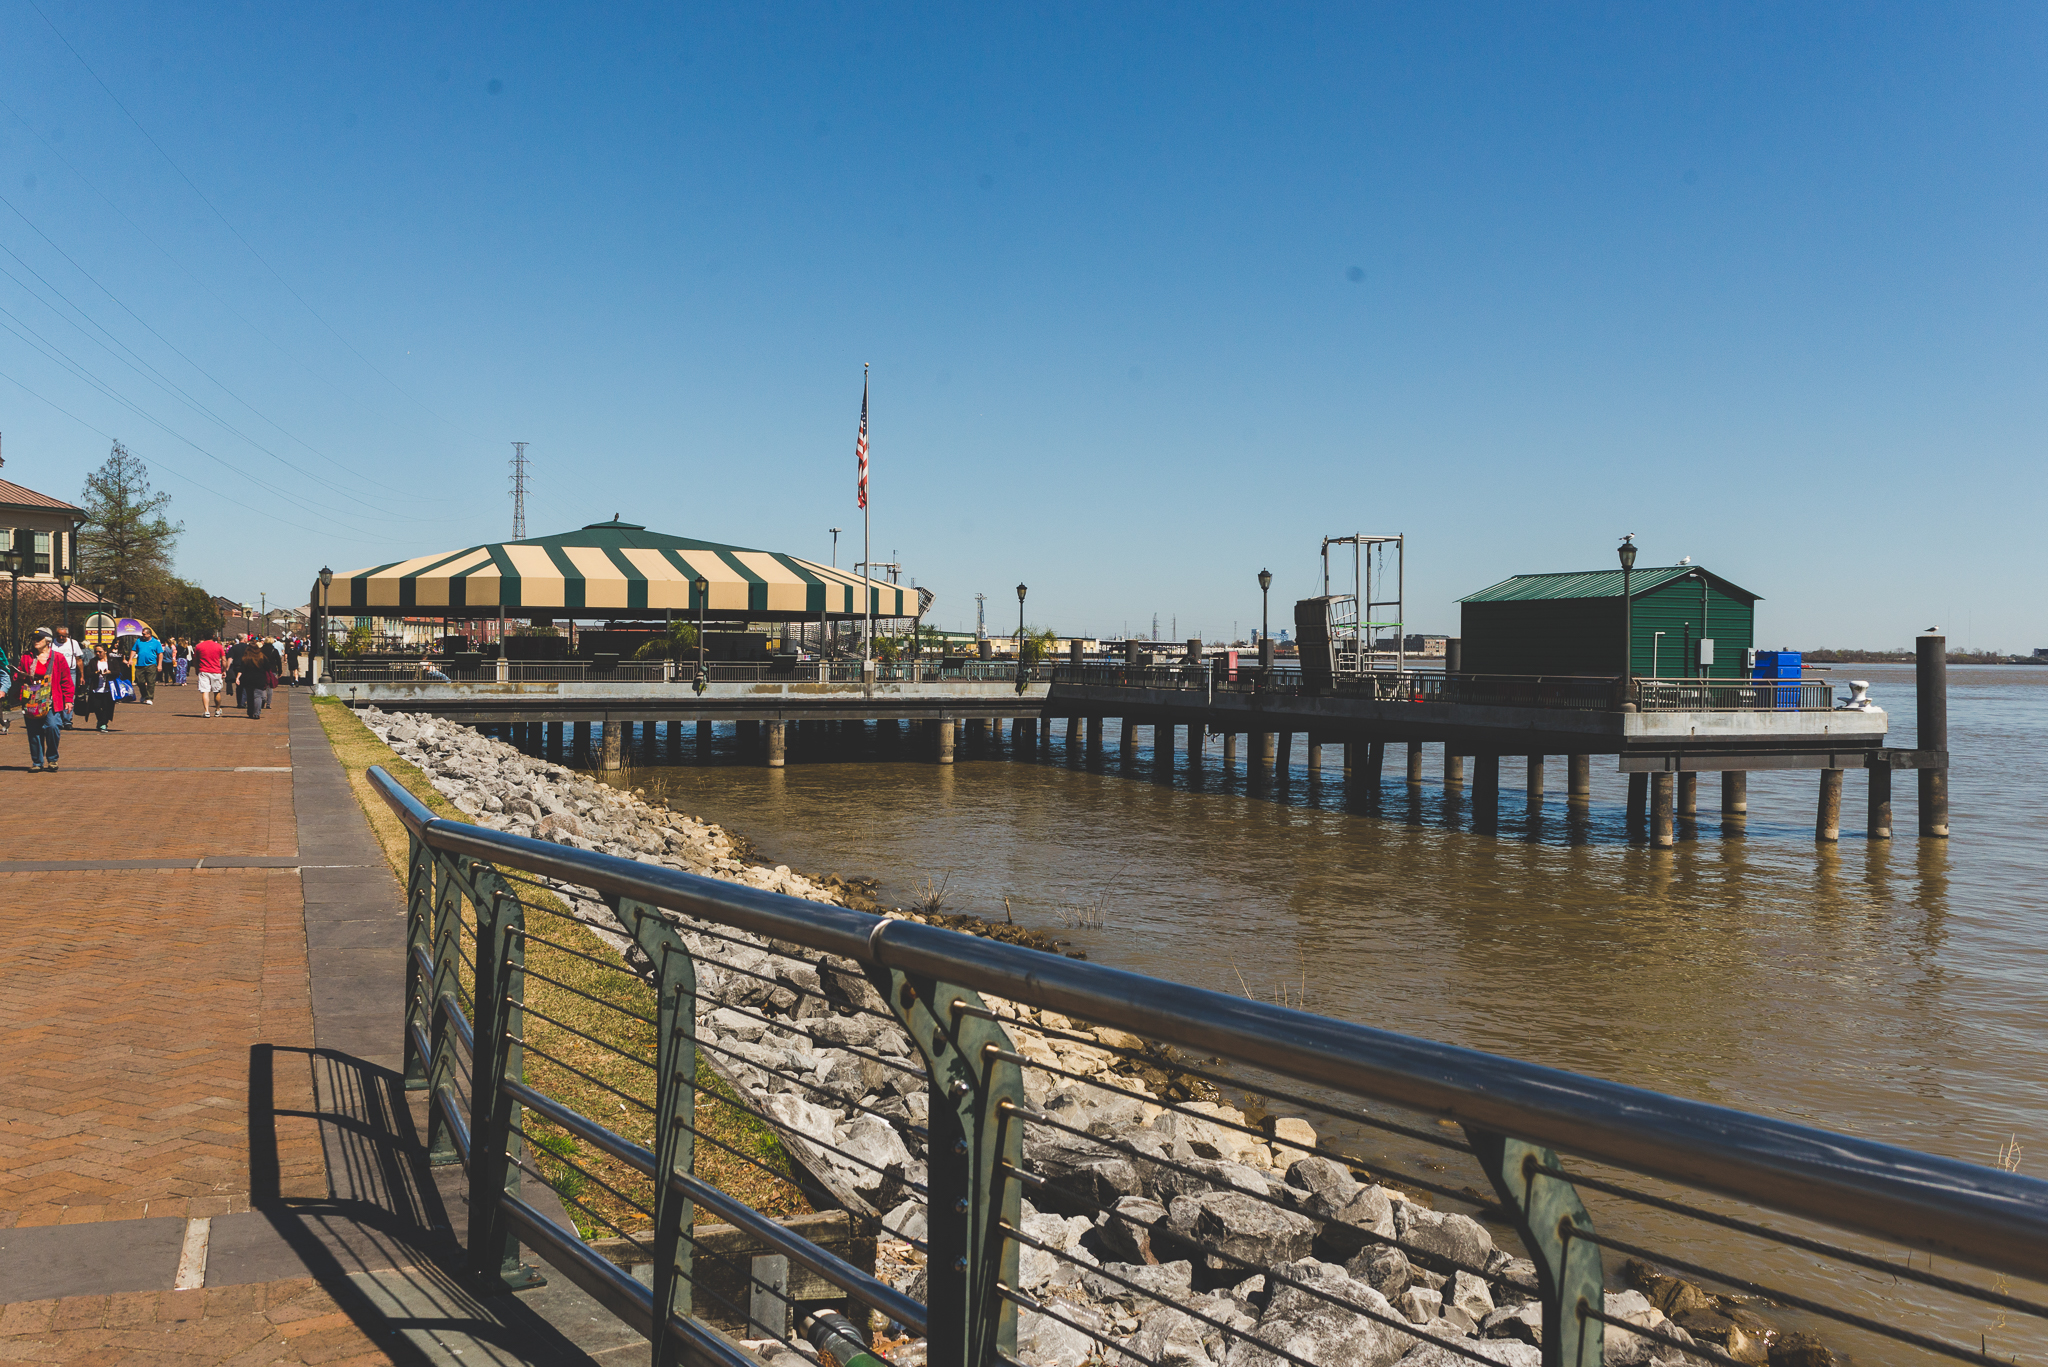 Walking by the Mississippi River. / 2/27/16 / New Orleans, LA